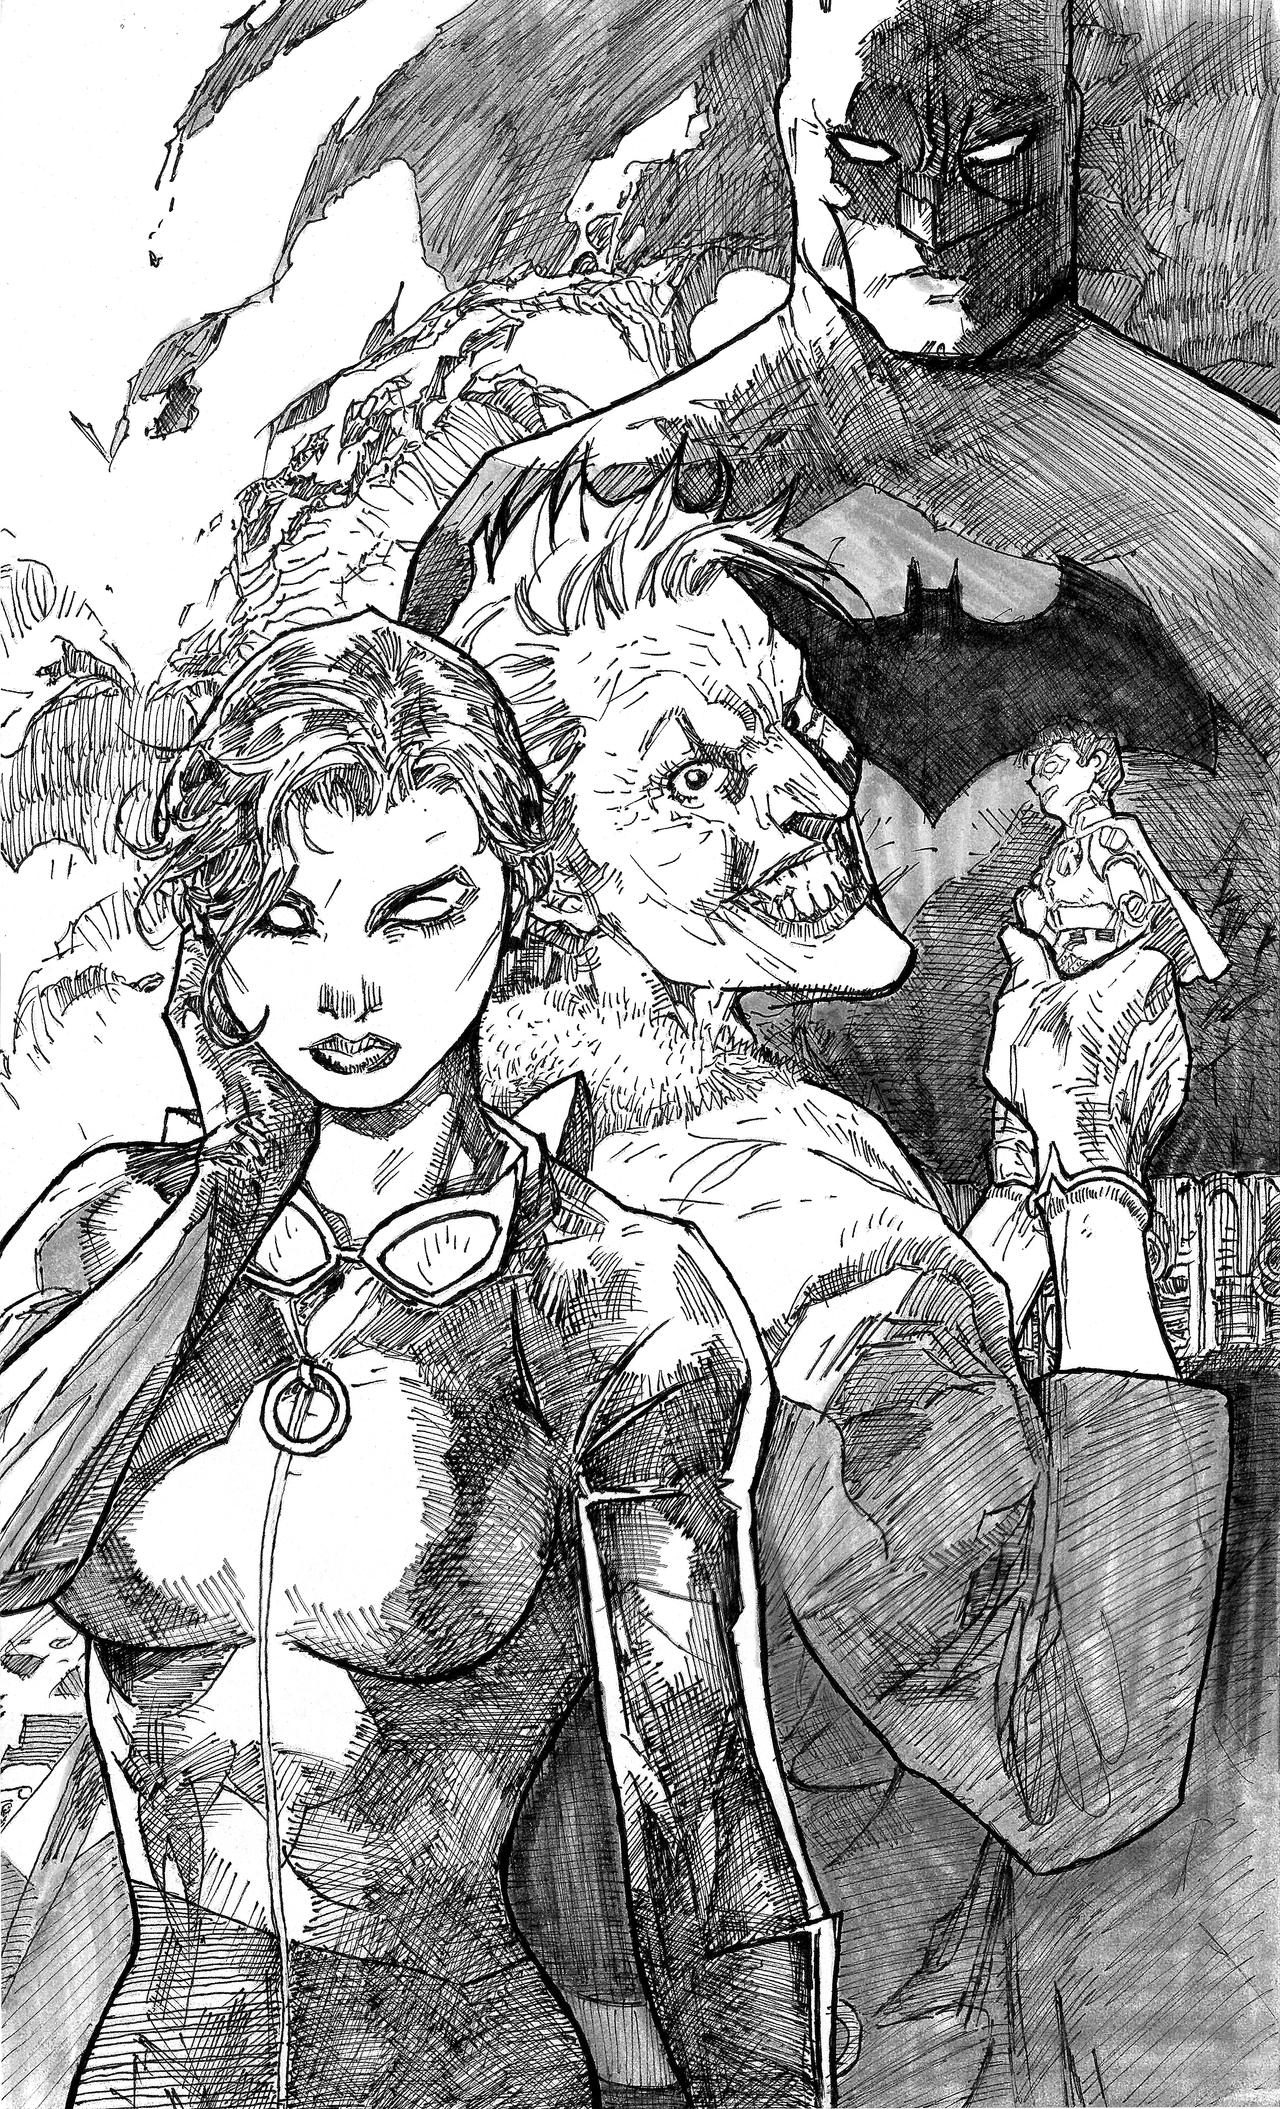 BATMAN CATWOMAN Issue 2 varent cover by Jim Lee